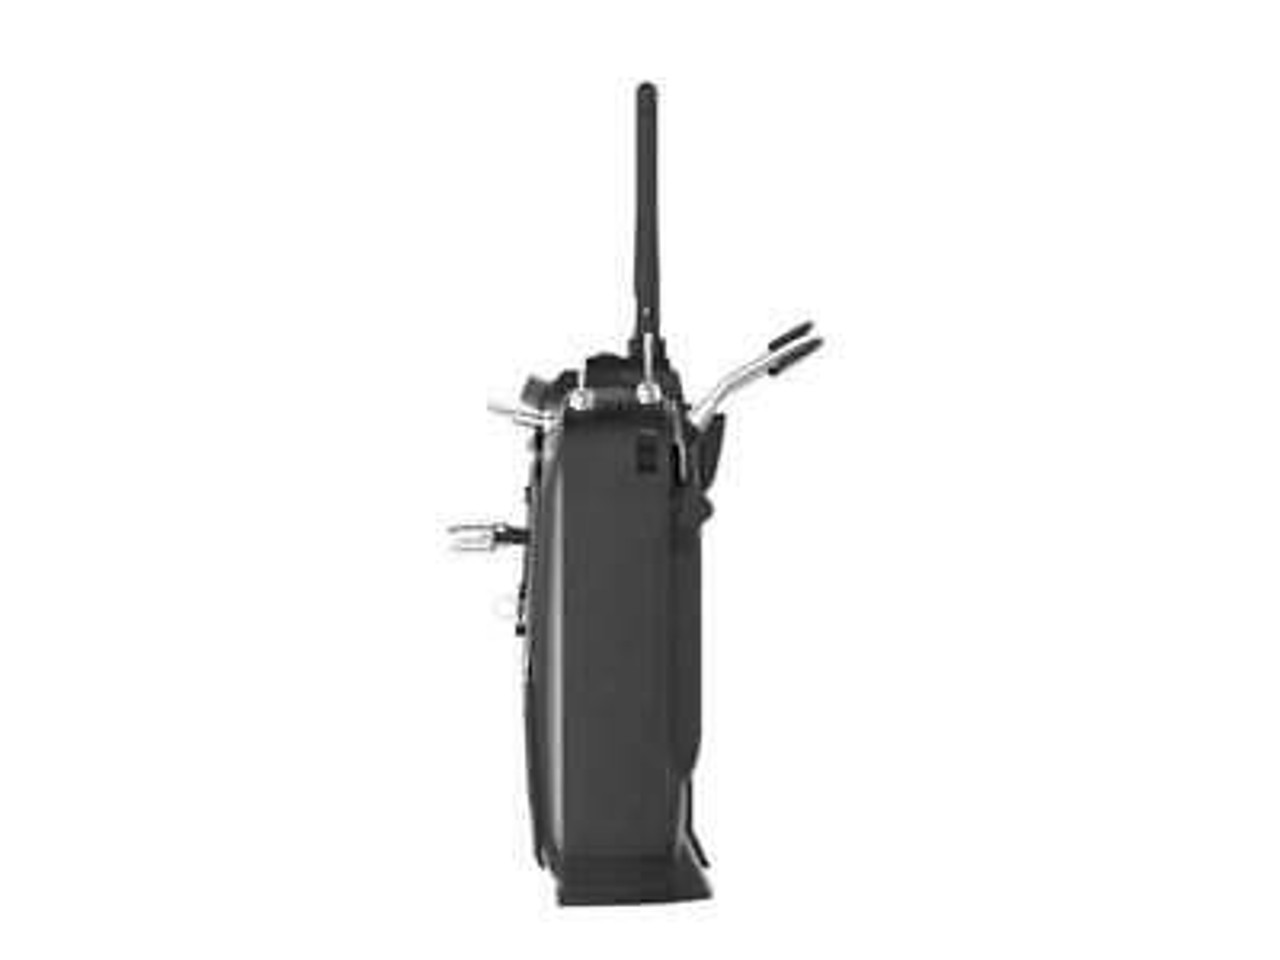 RadioMaster TX16S HALL and Touch Version 16ch 2.4ghz Multi-protocol OpenTX Radio System Mode 2 Includes LiPo Battery Pack